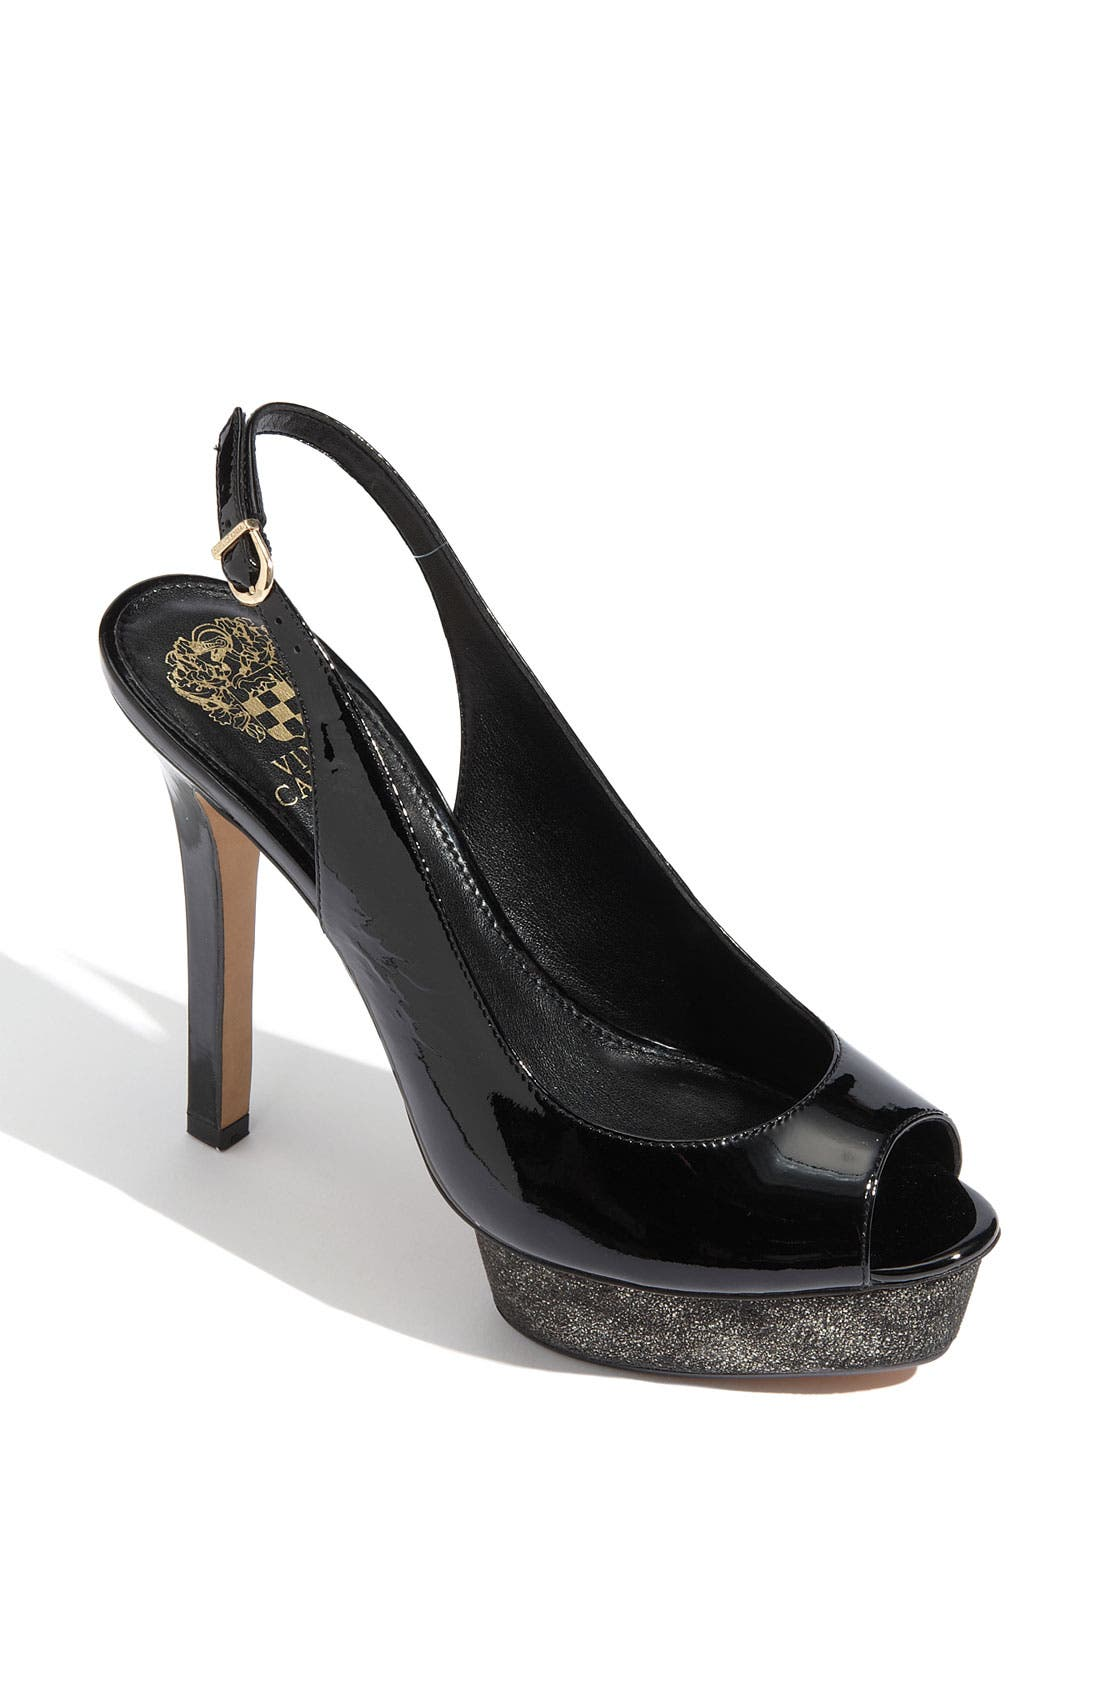 Alternate Image 1 Selected - Vince Camuto 'Leala' Pump (Exclusive)